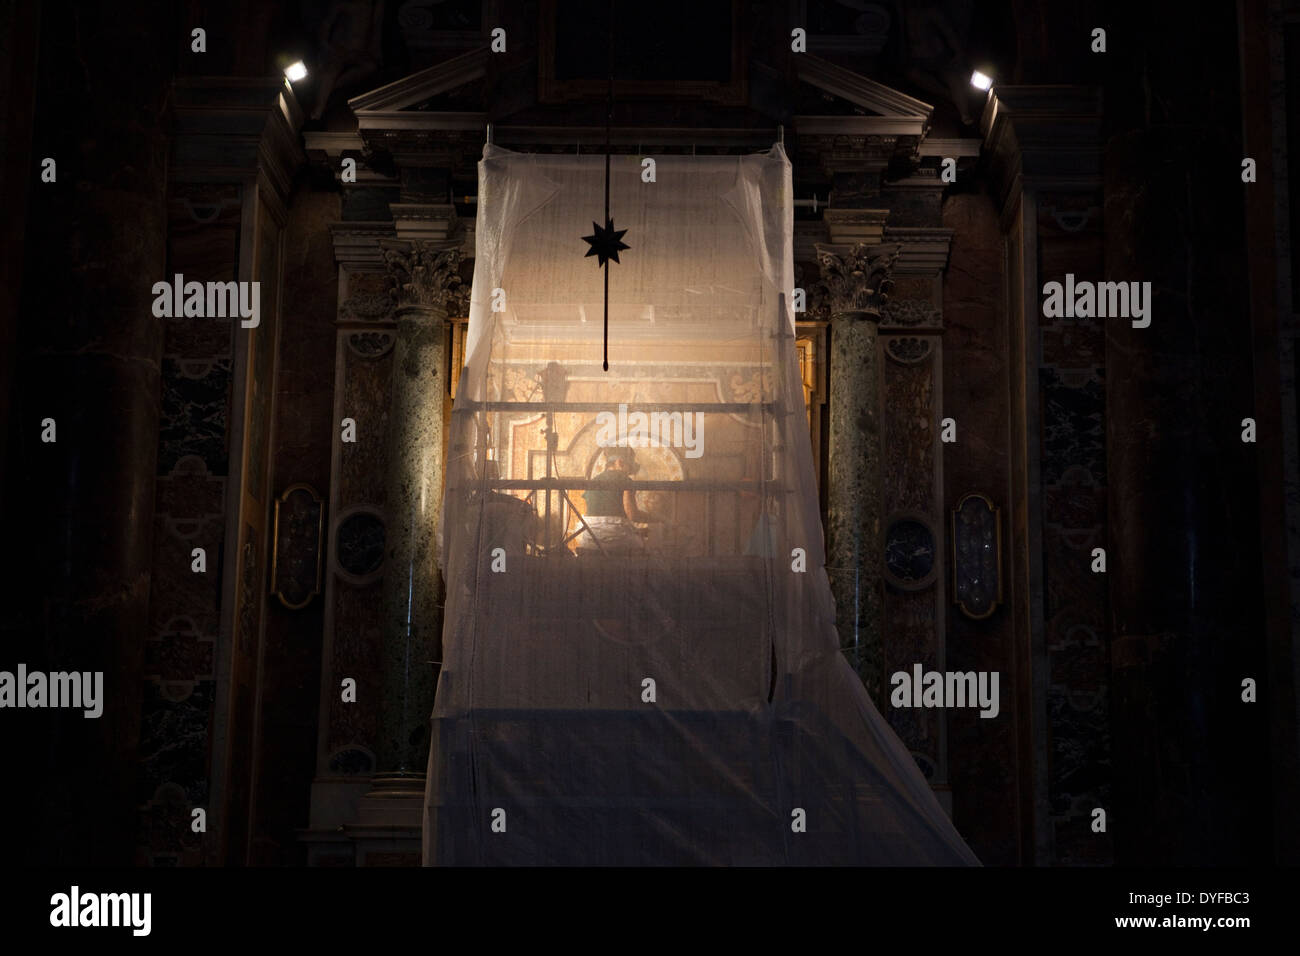 A conservator working restoring artworks in St. Peter's Basilica in Rome - Stock Image